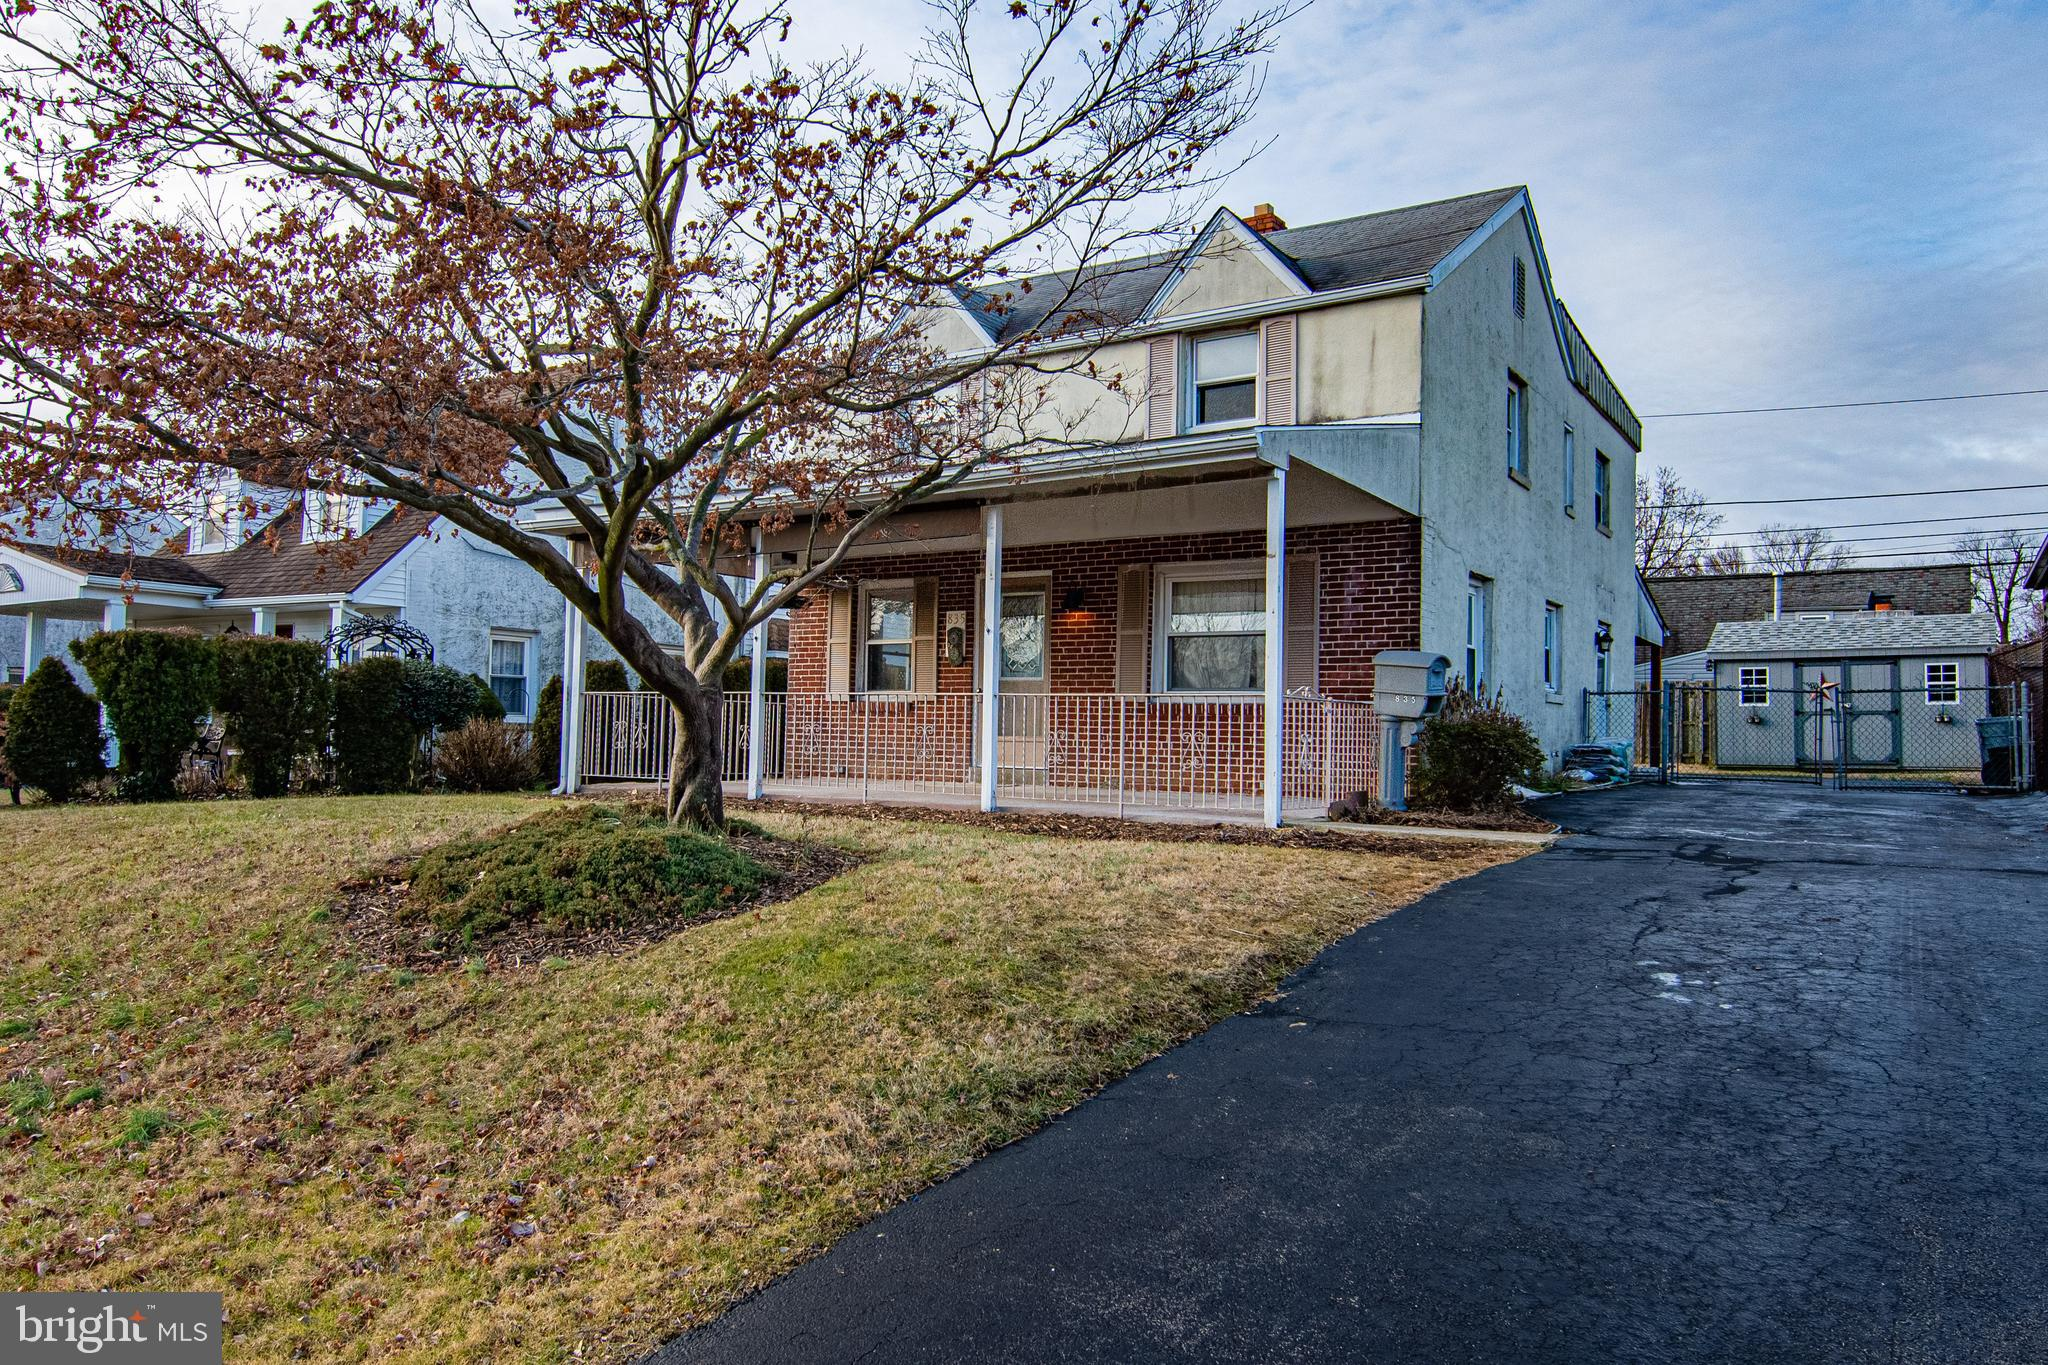 835 CRICKET ROAD, SECANE, PA 19018